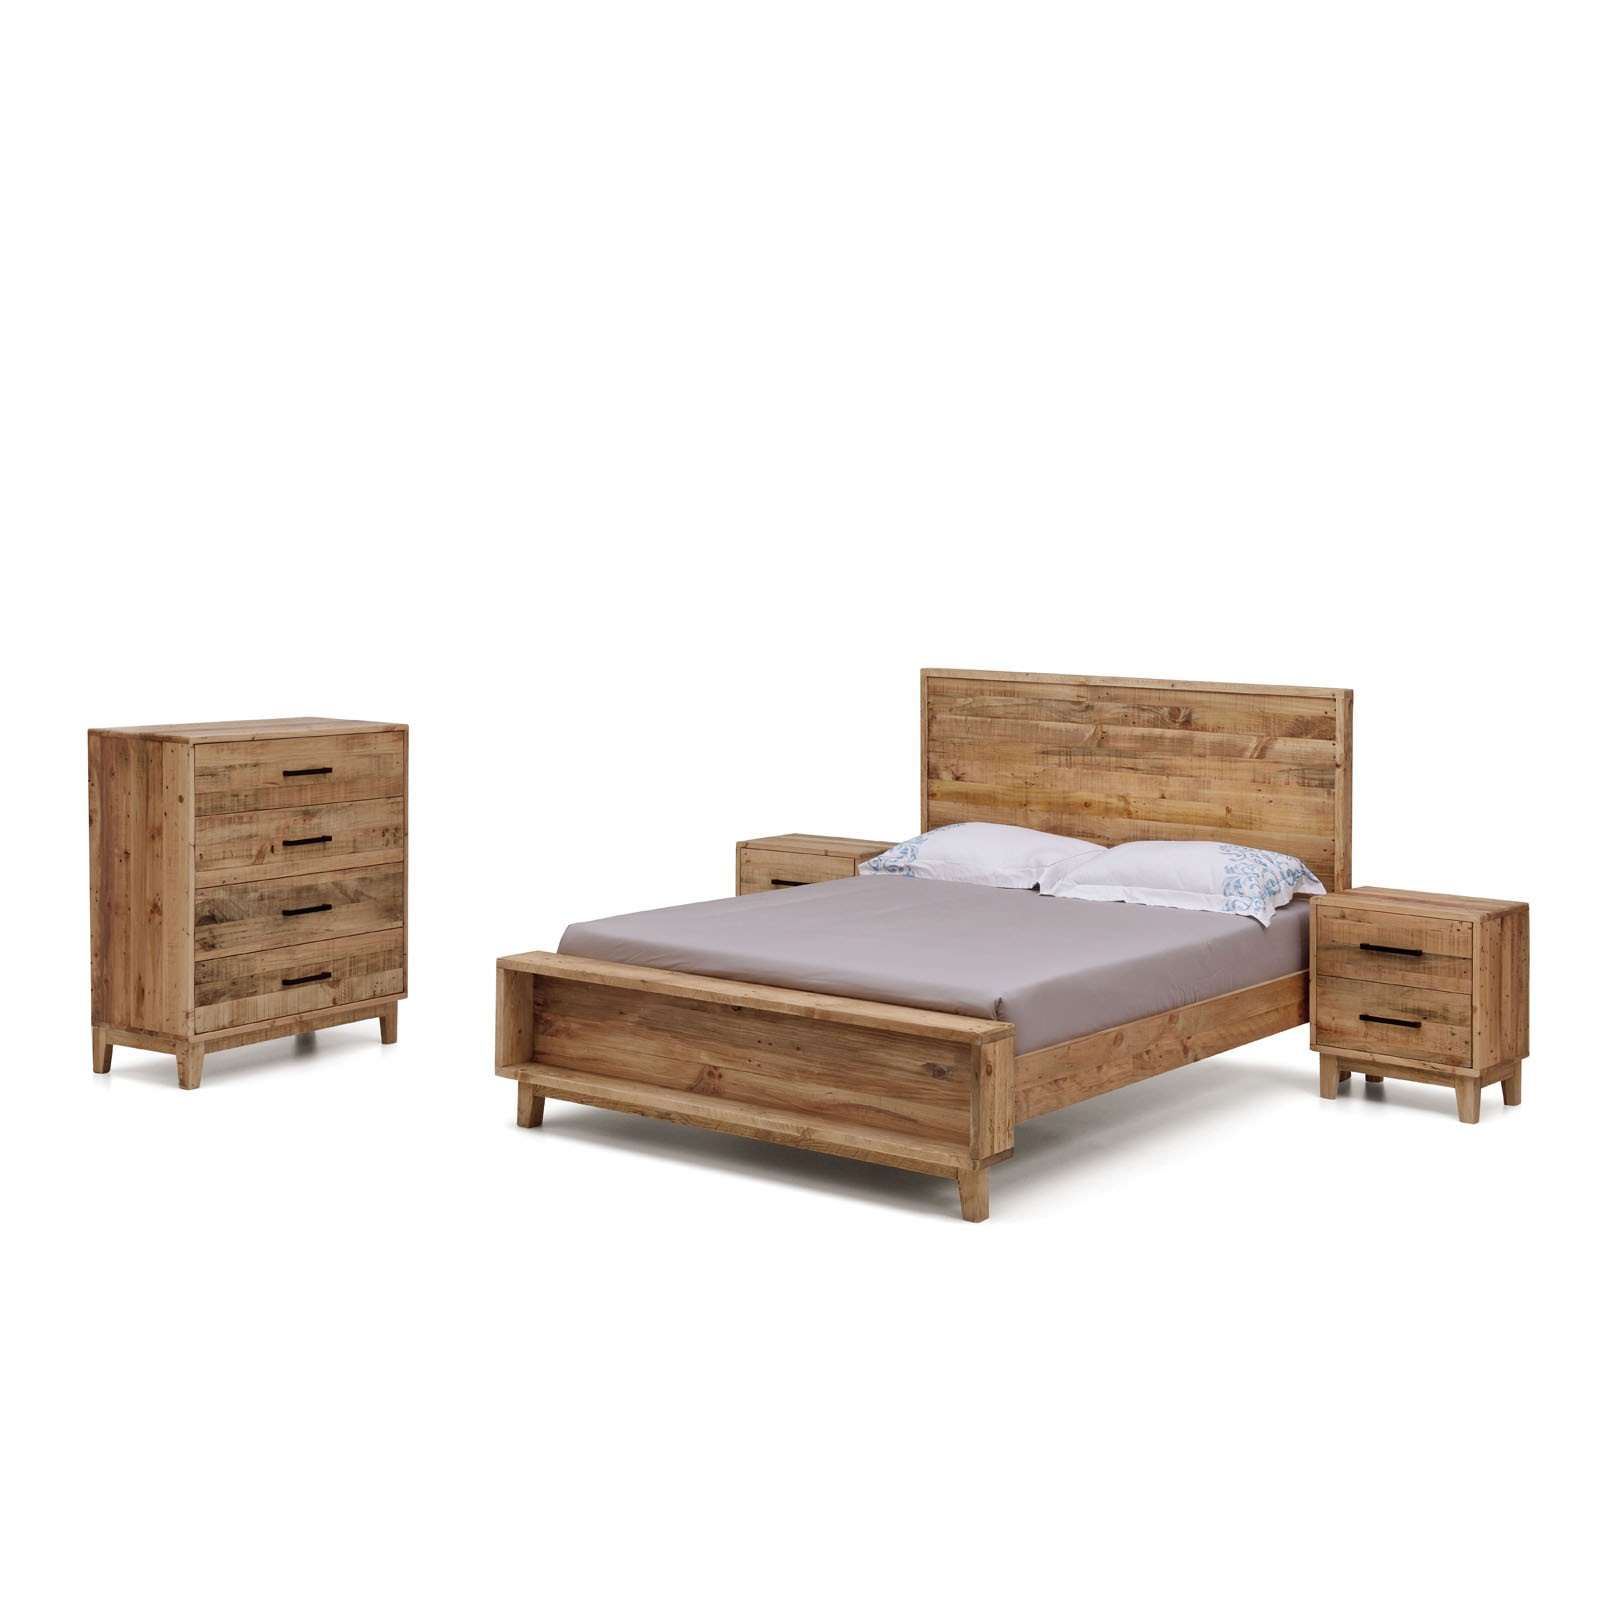 Portland Bedroom Furniture Portland Brand New Recycled Solid Pine Rustic Timber Queen Size